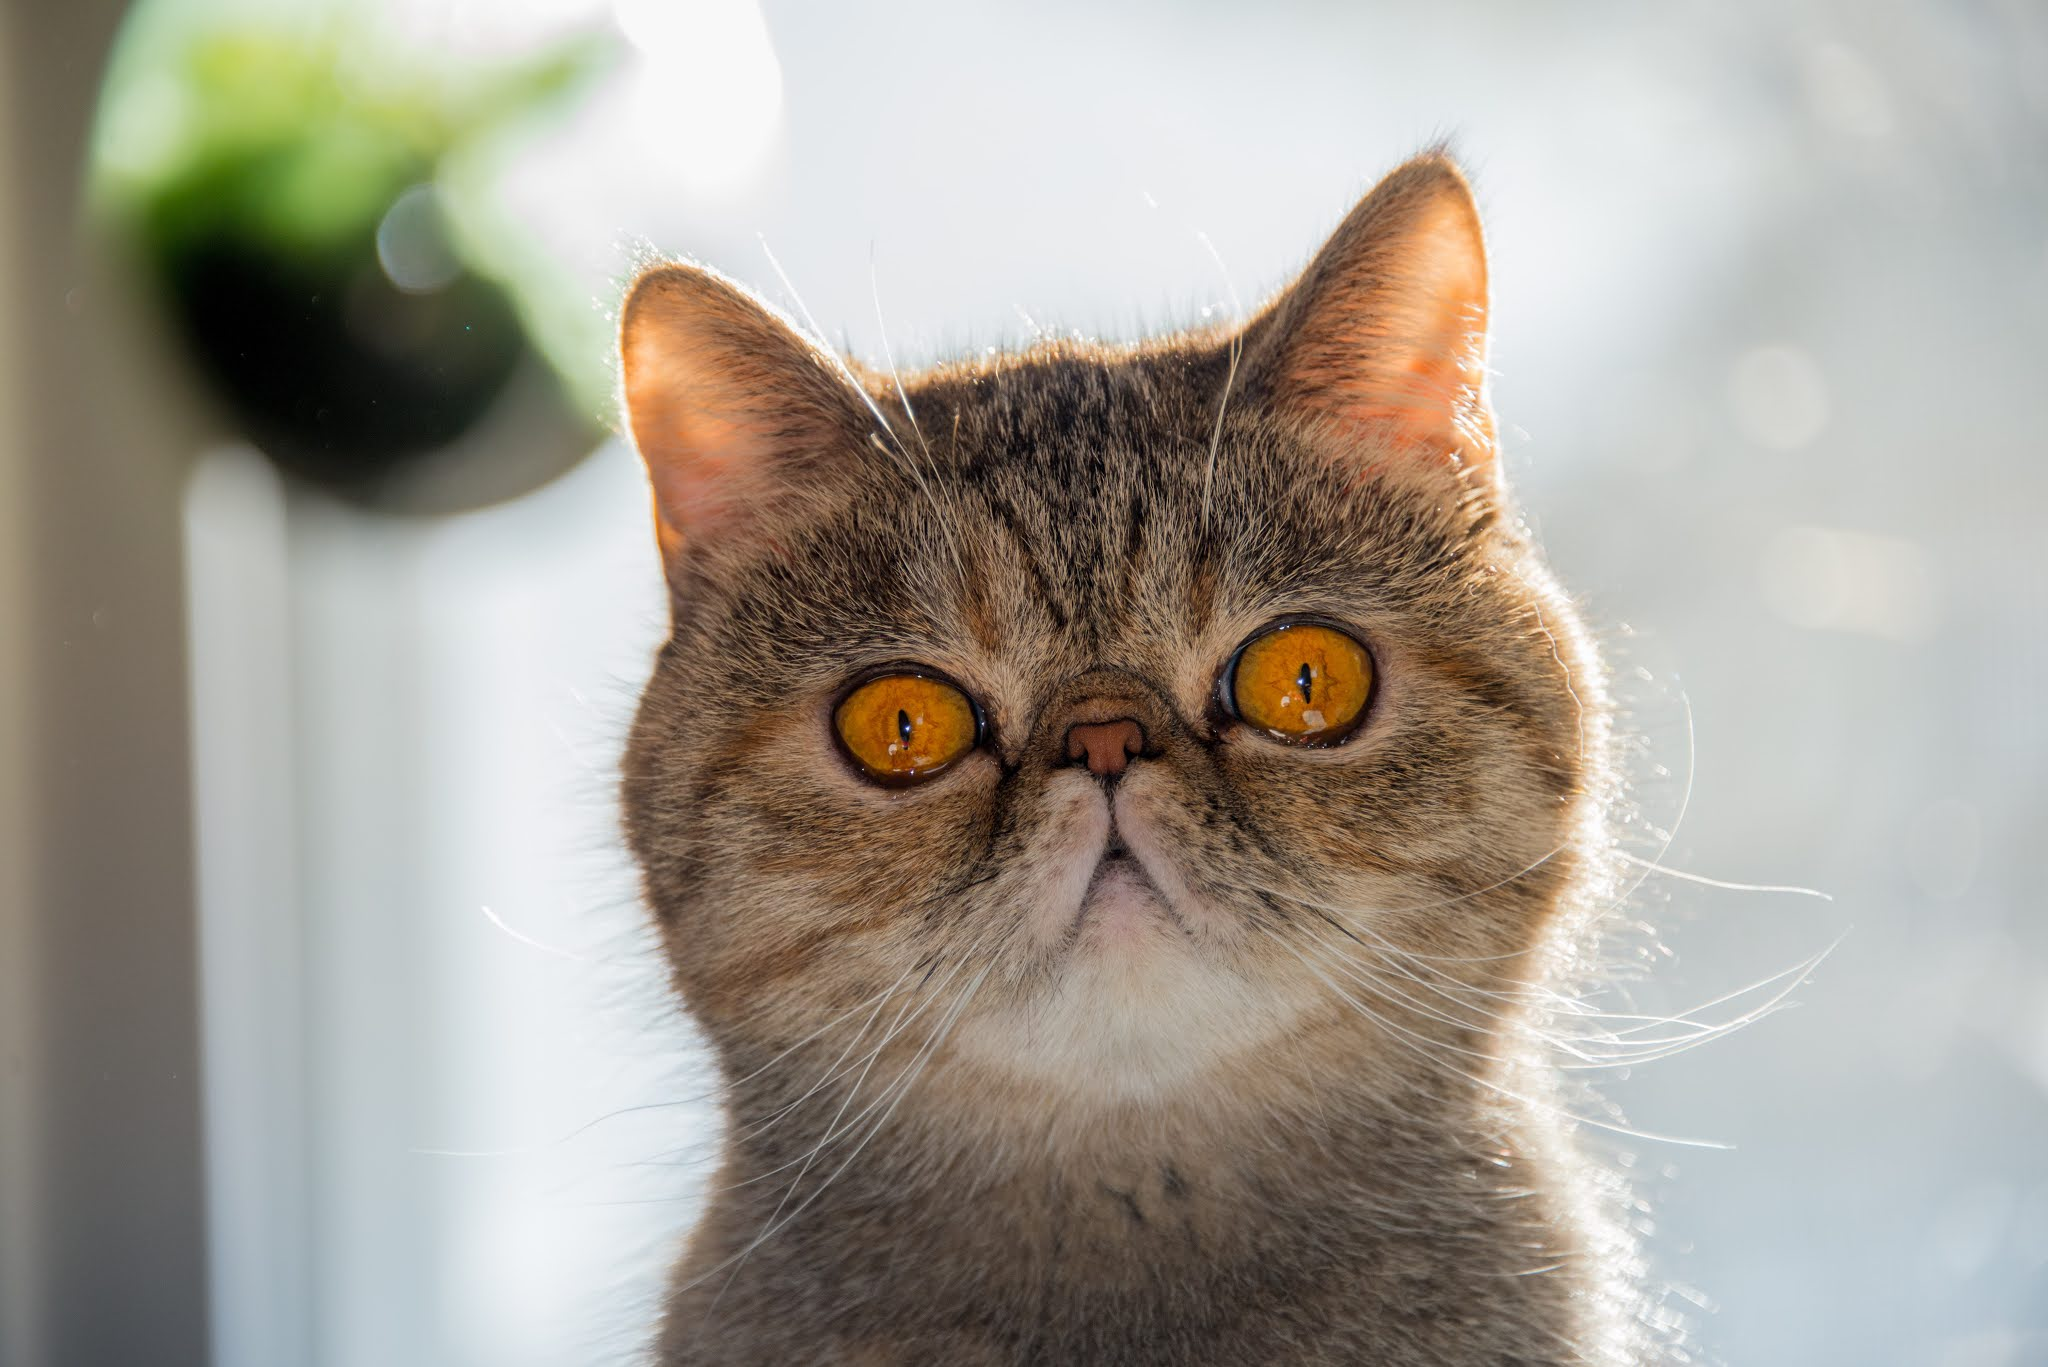 Many facts about cats that you should know